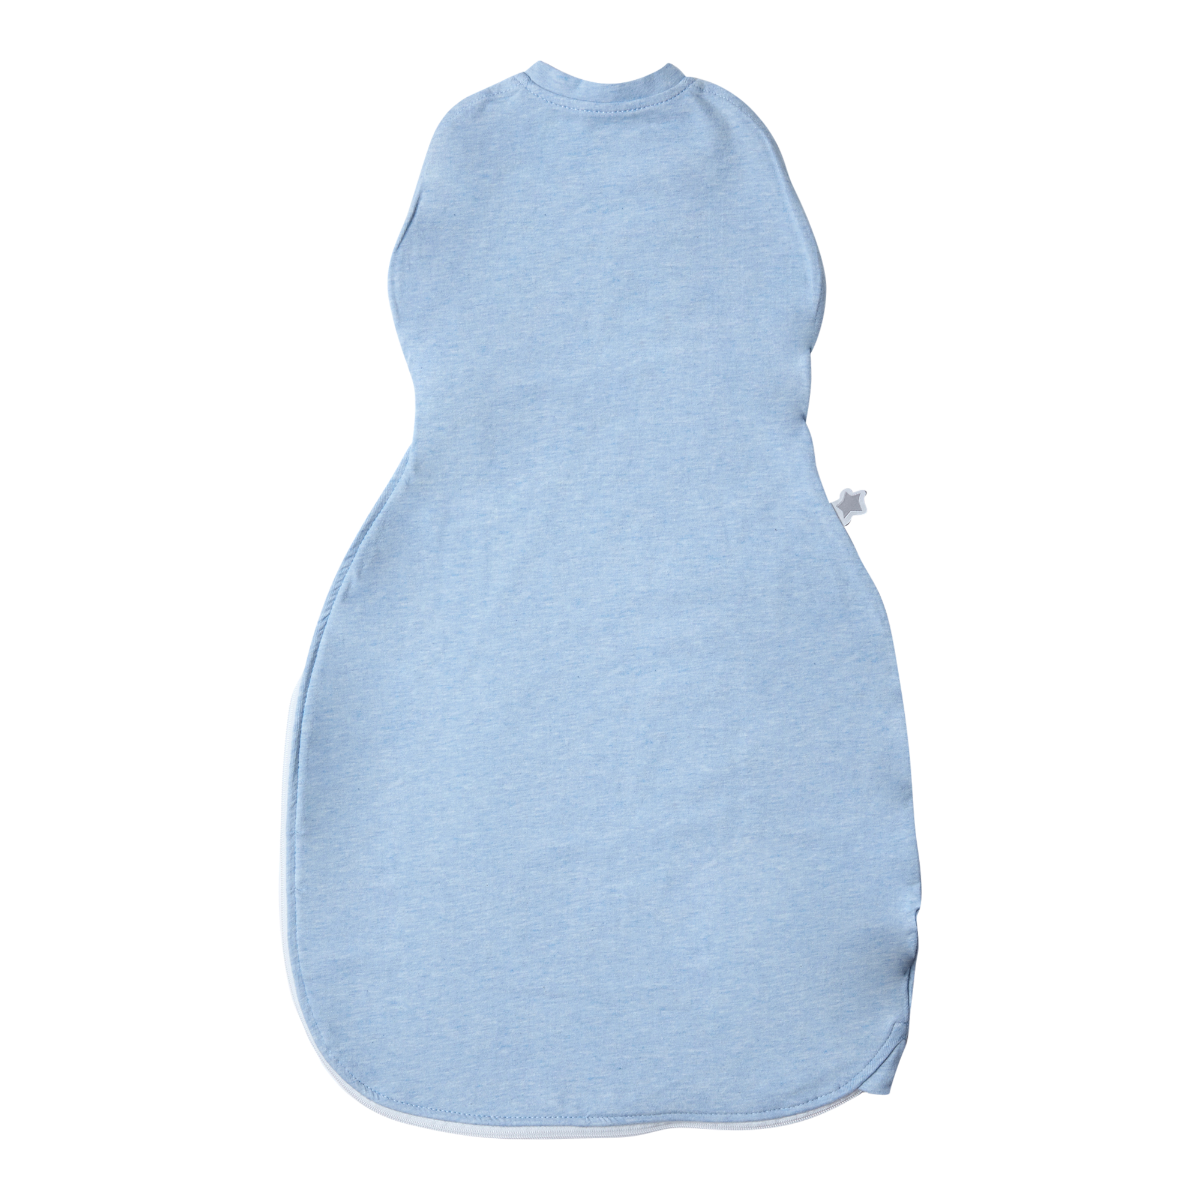 Blank EASY TOUCH Fastening Bibs in Grey Marl PACK OF 12